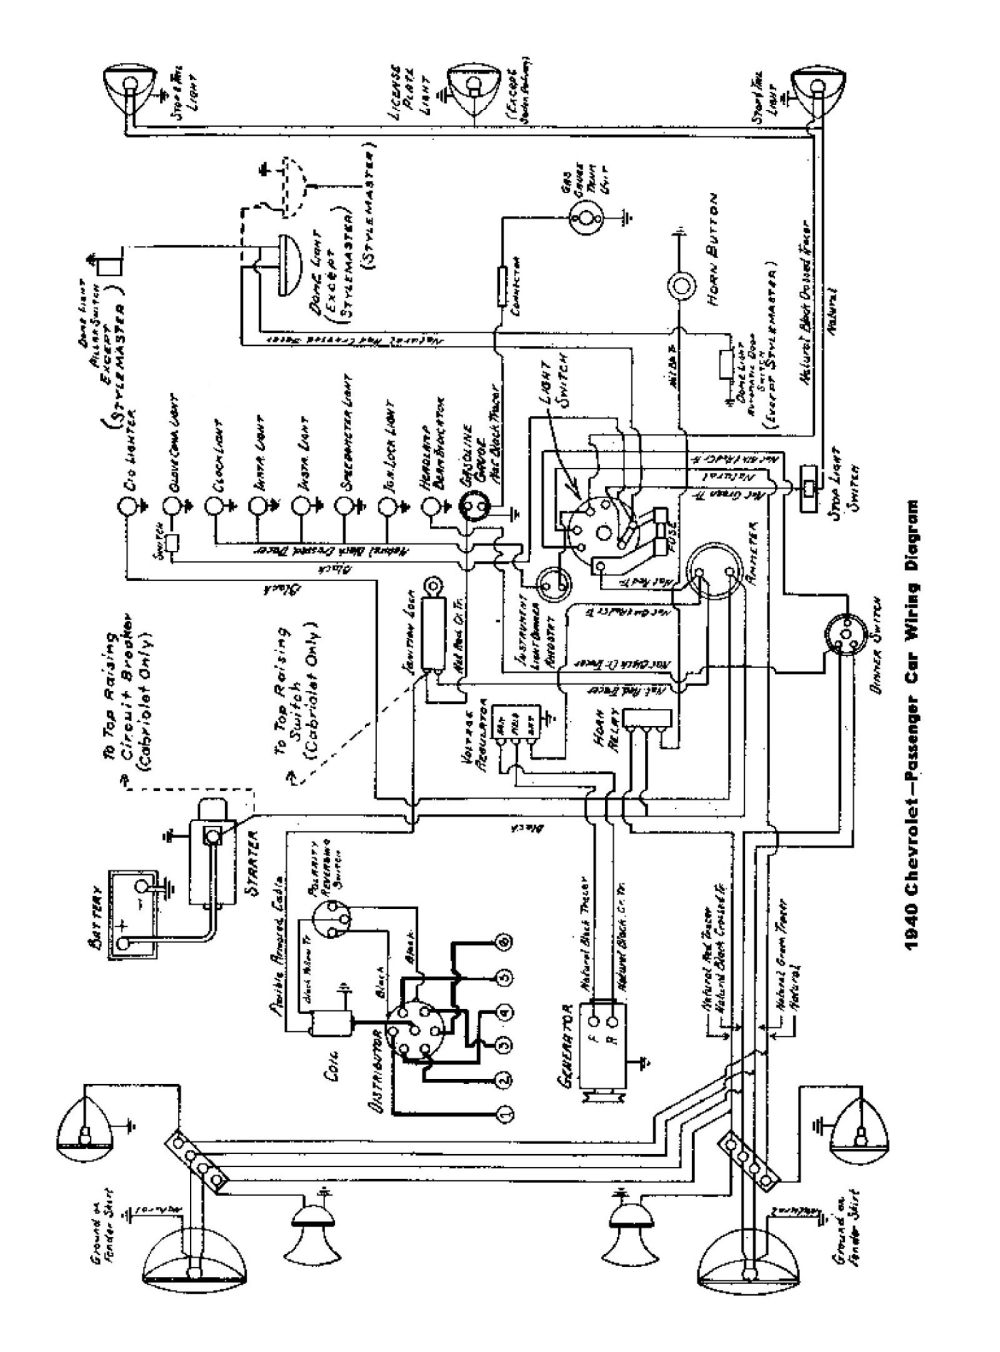 medium resolution of 1941 ford wiring schematic wiring diagram name1941 ford wiring schematic wiring diagram list 1941 ford headlight